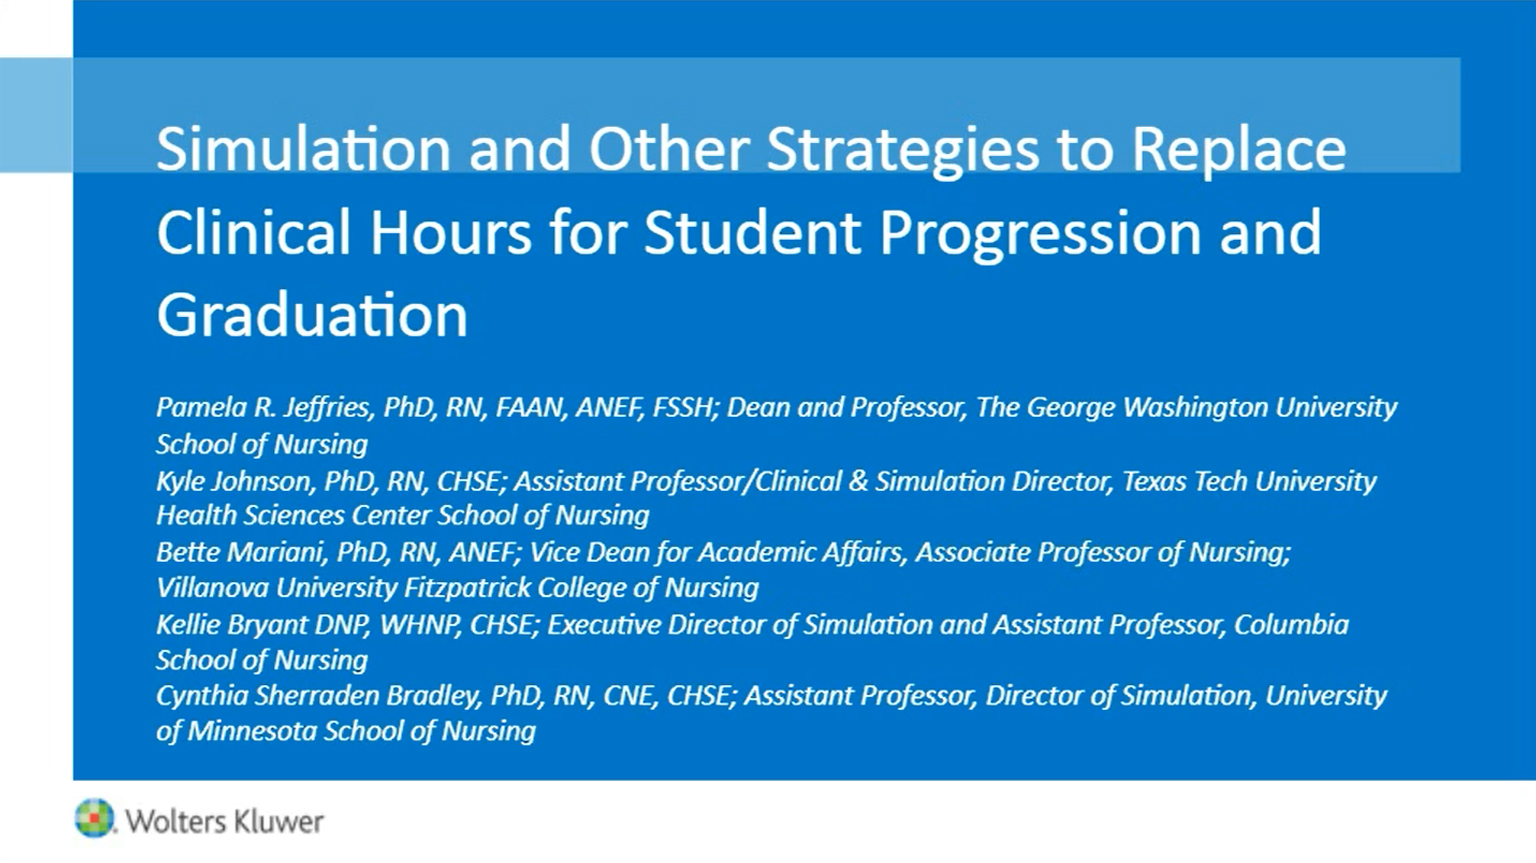 Screenshot of Simulations and other strategies to replace clinical hours for student progression and graduation video